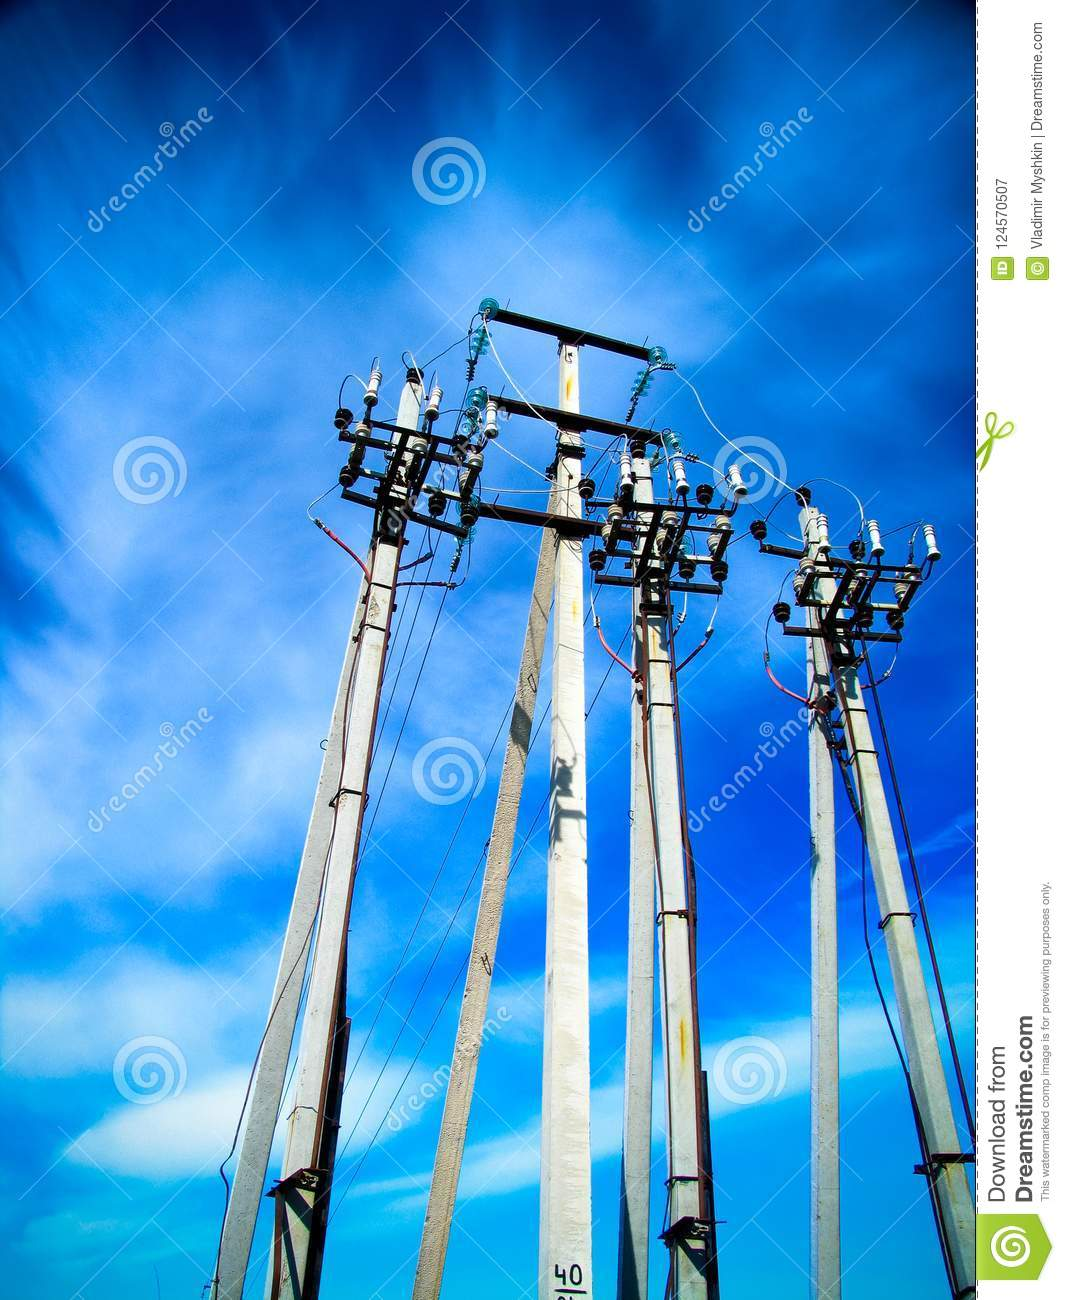 Concrete pillars of high-voltage line